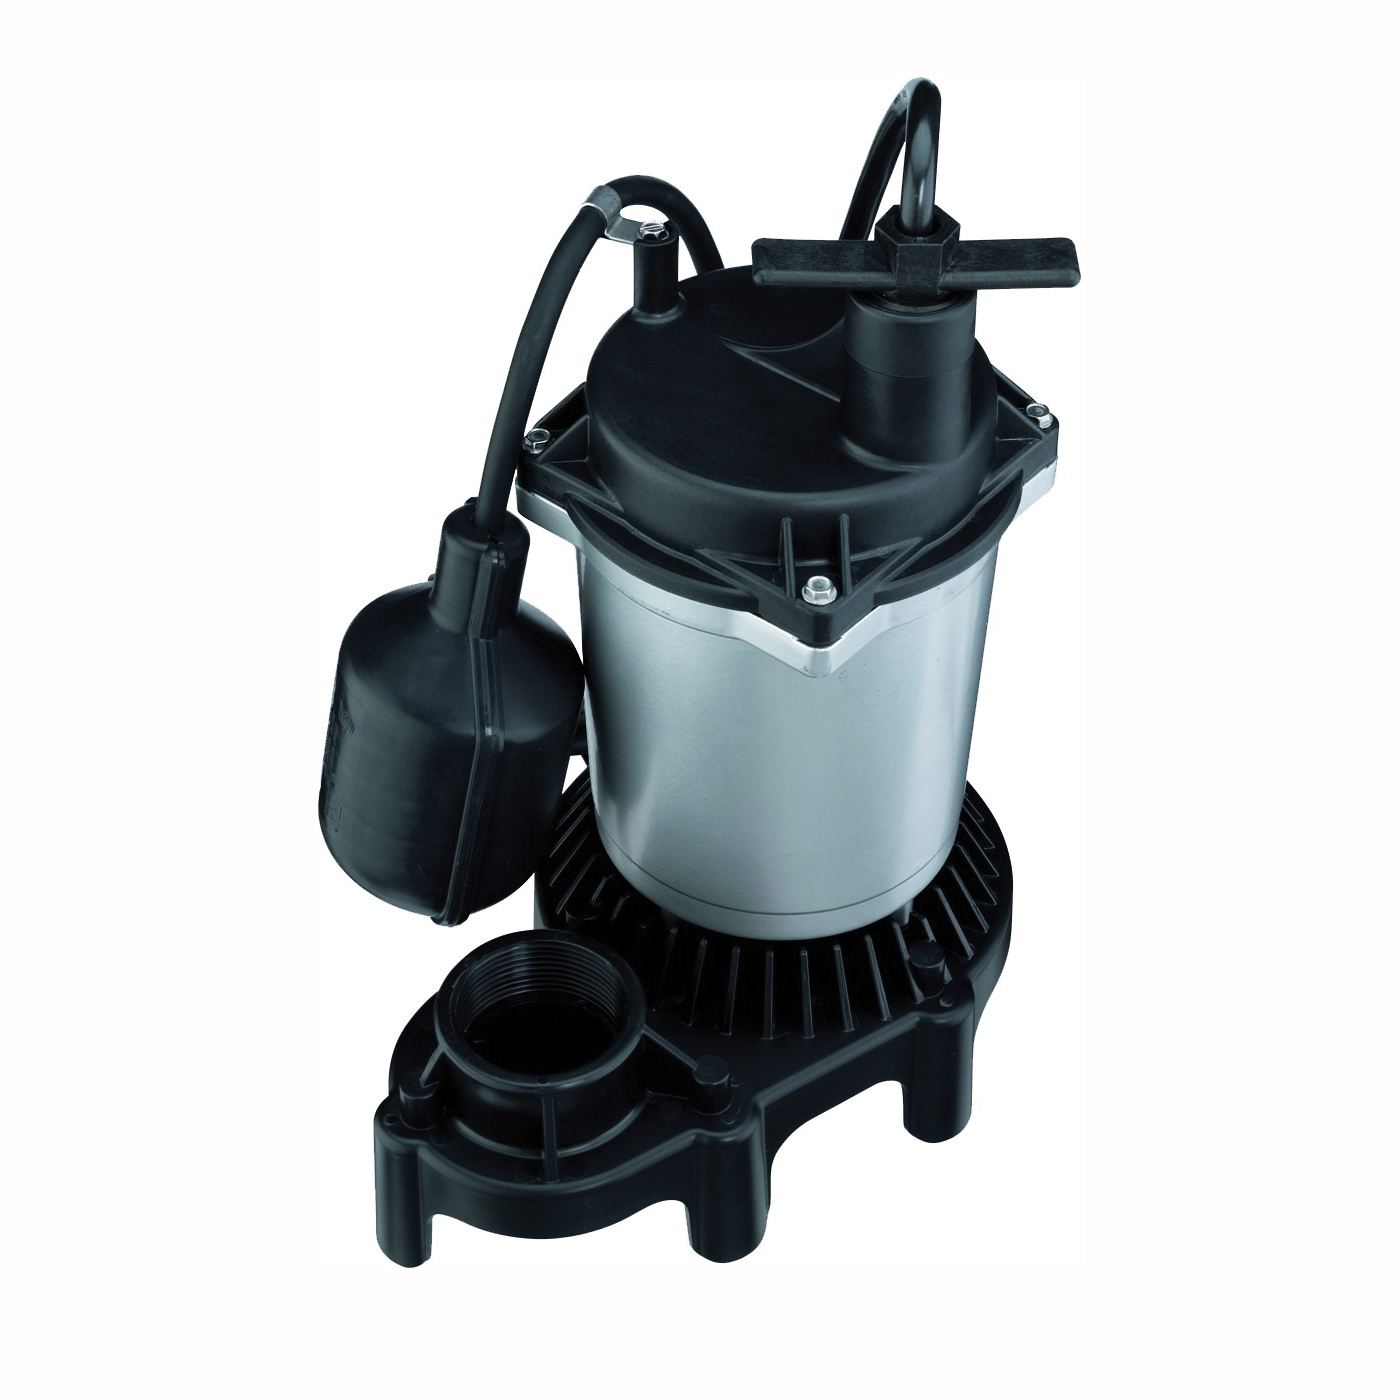 Picture of Flotec FPZS50T Sump Pump, 1-Phase, 4.1 A, 115 V, 0.5 hp, 1-1/2 in Outlet, 22 ft Max Head, 960 gph